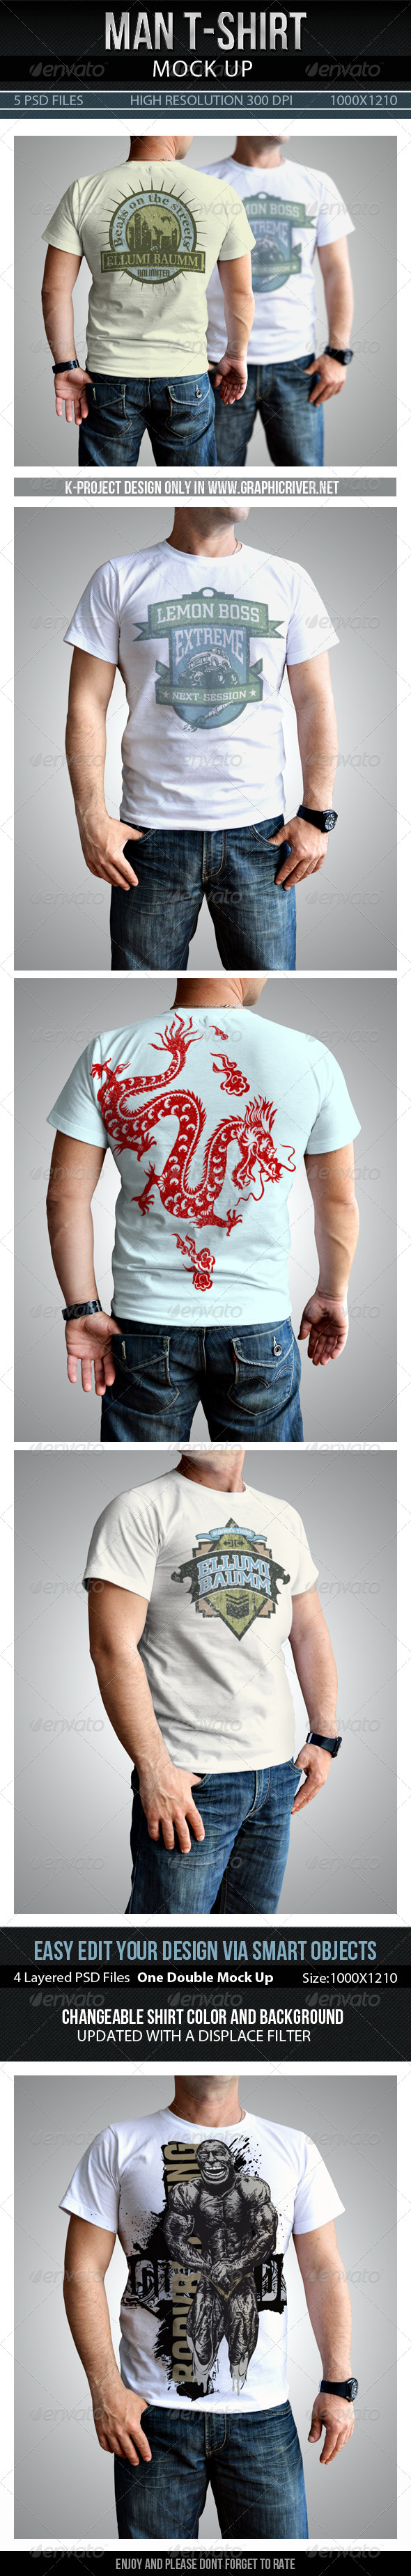 GraphicRiver Man T-Shirt Mock Up 7735043